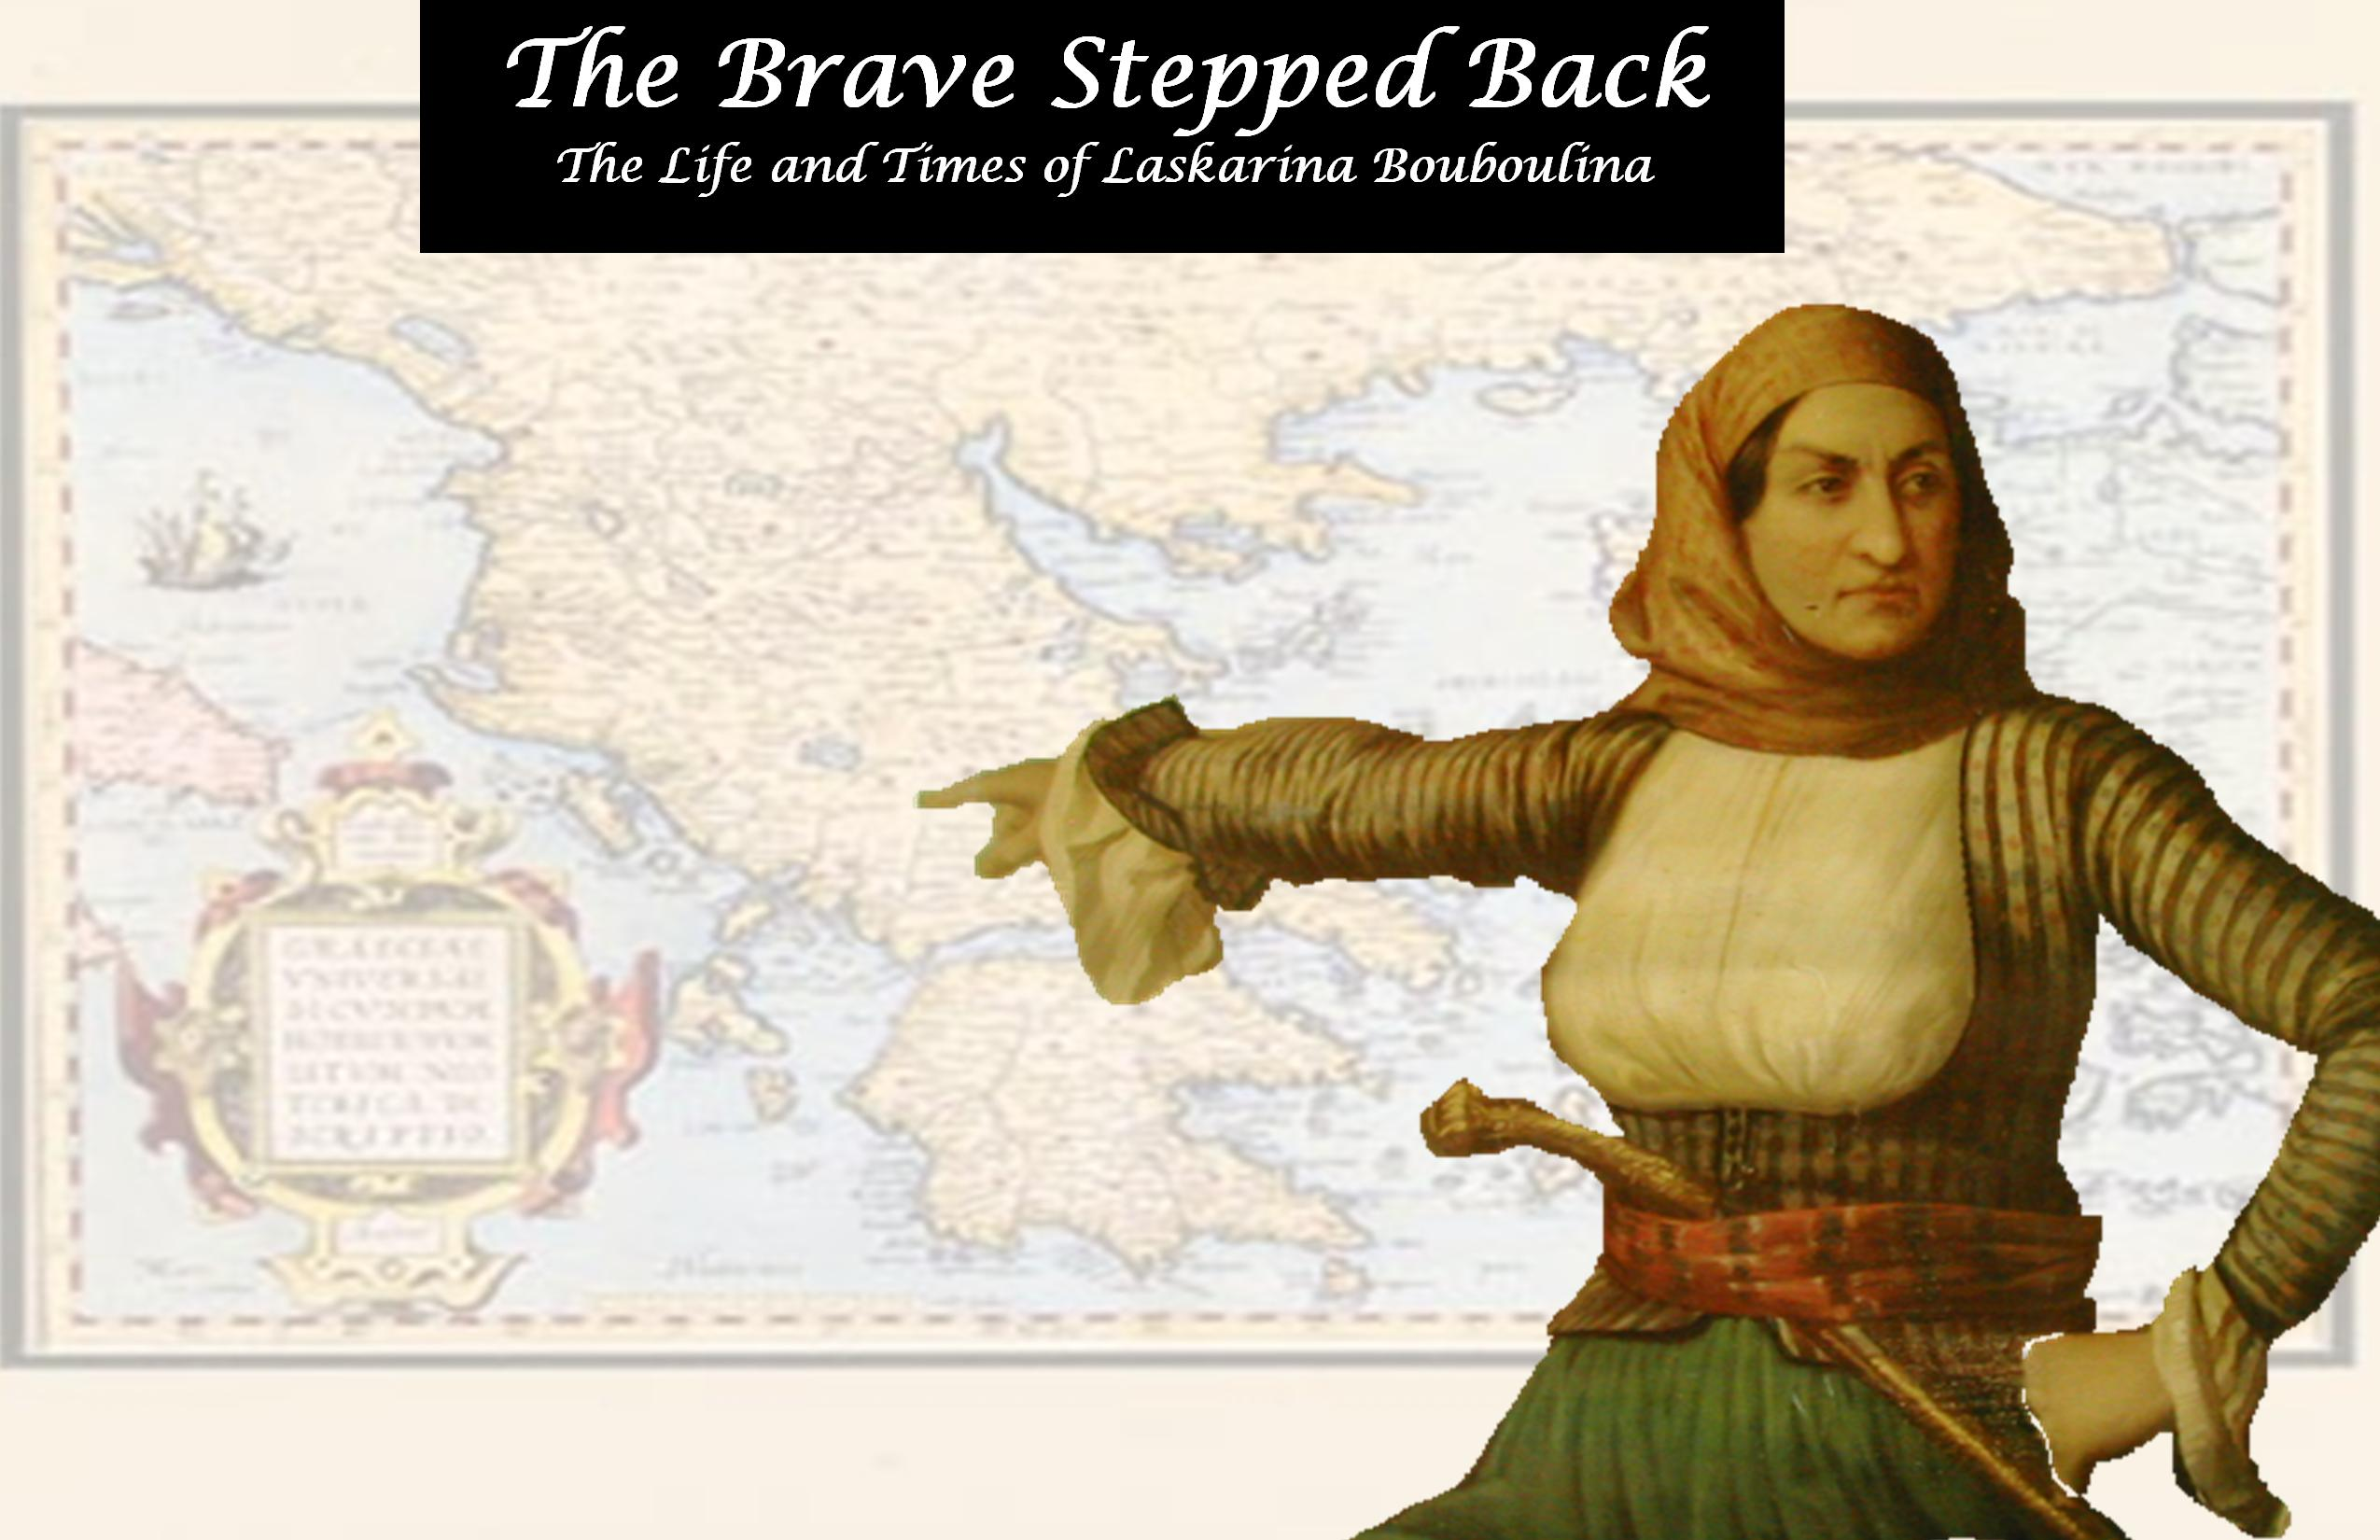 The Brave Stepped Back: The Life and Times of Laskarina Bouboulina. A Film by April Householder